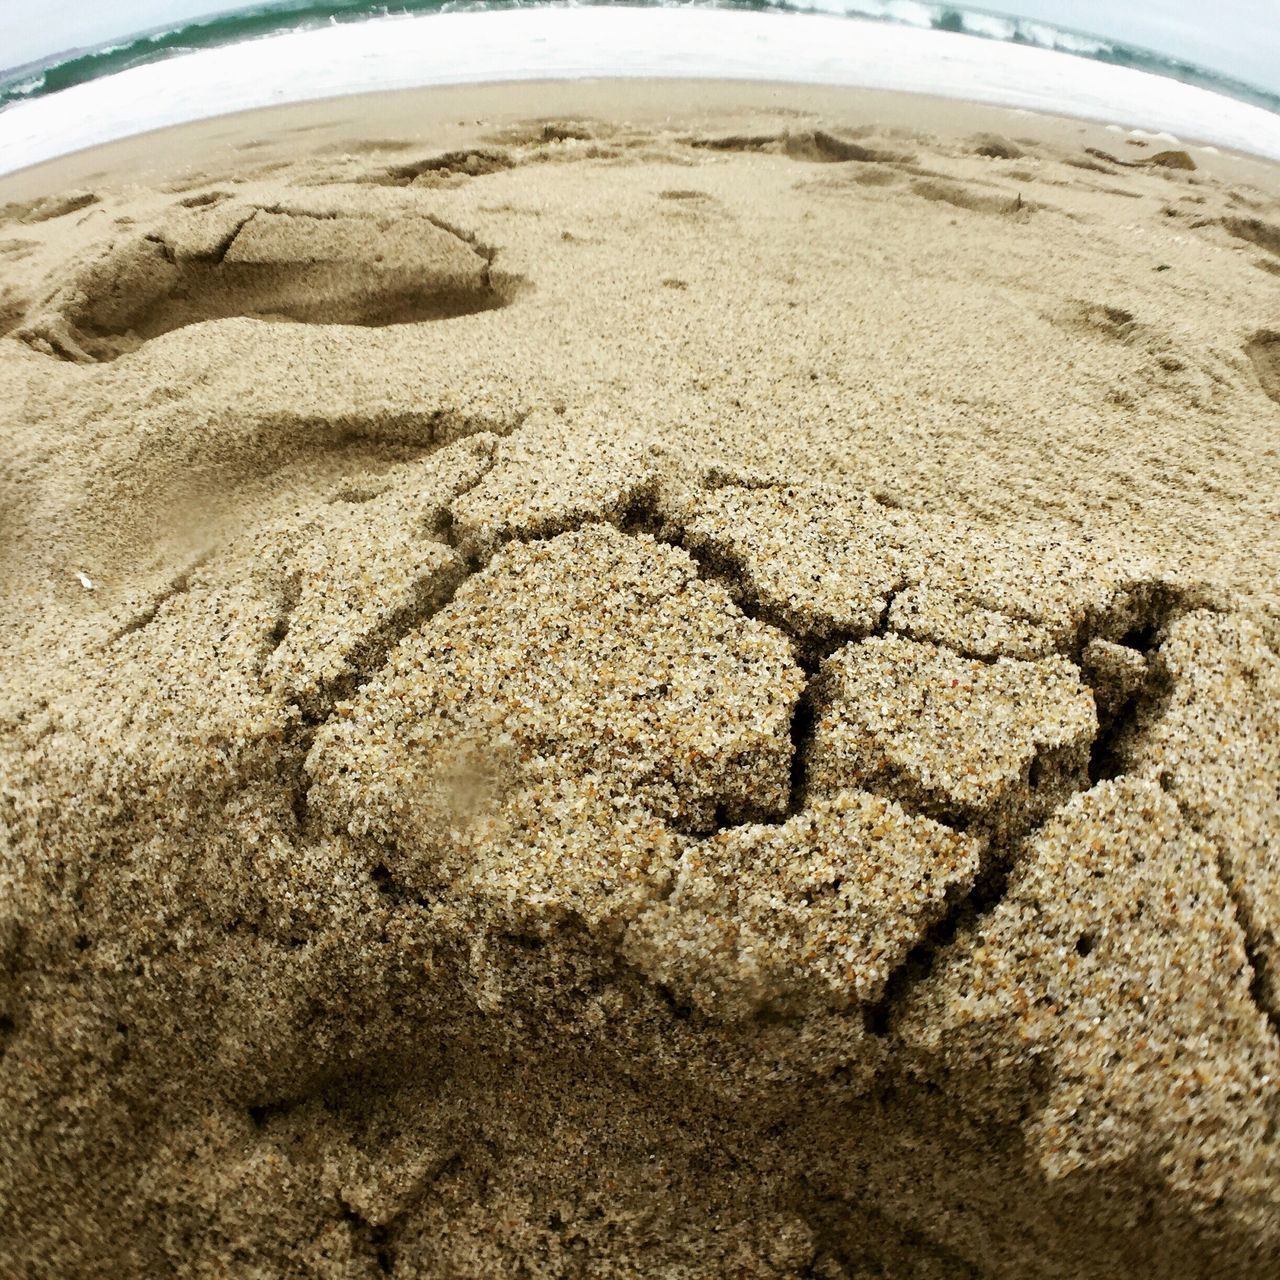 sand, nature, no people, beach, day, outdoors, fish-eye lens, tire, close-up, water, sky